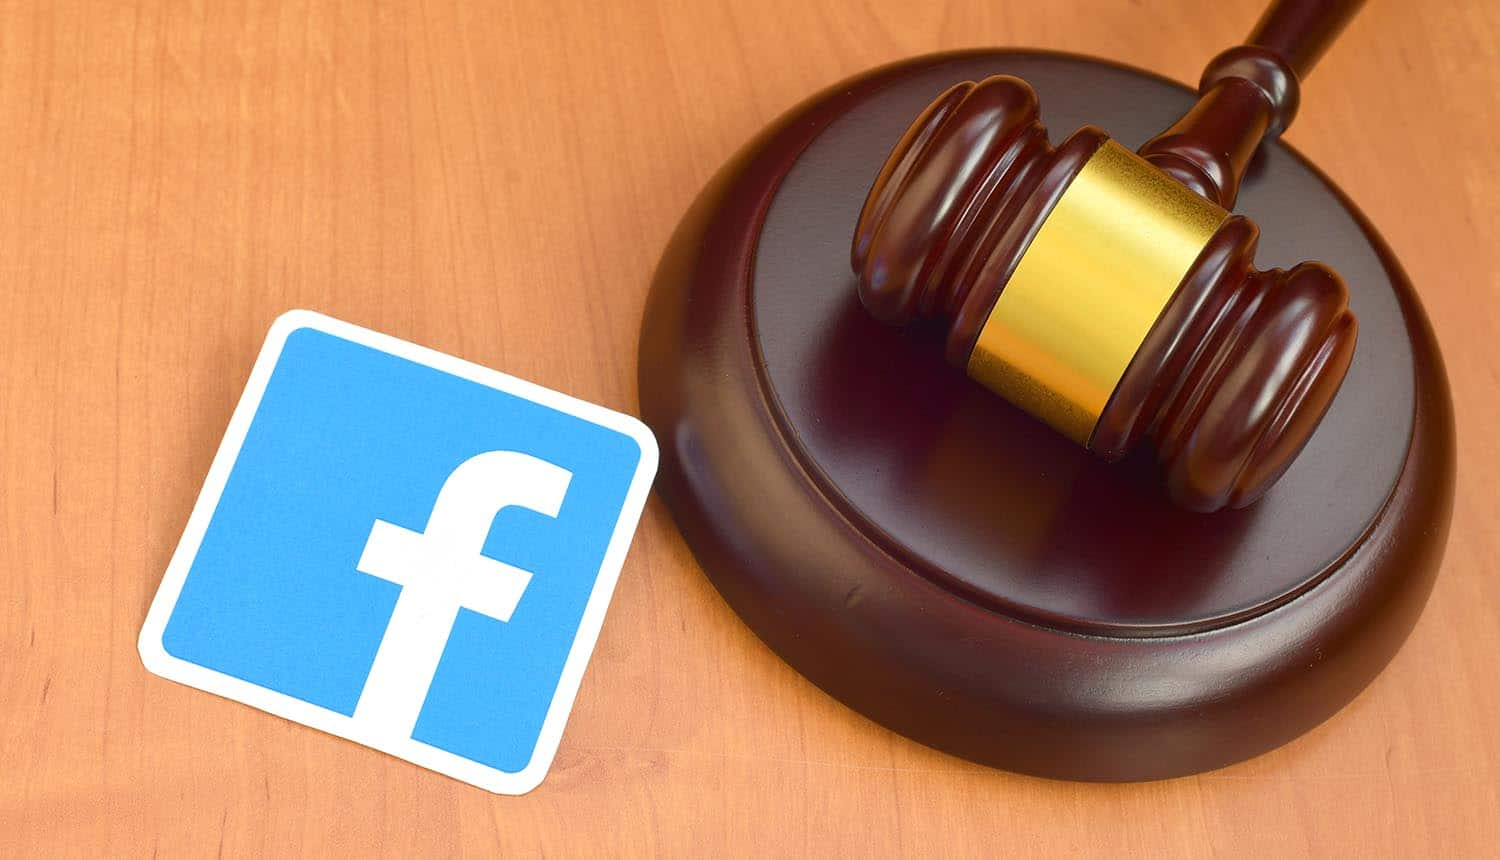 Facebook paper logo lies with wooden judge gavel showing privacy violation of user consent